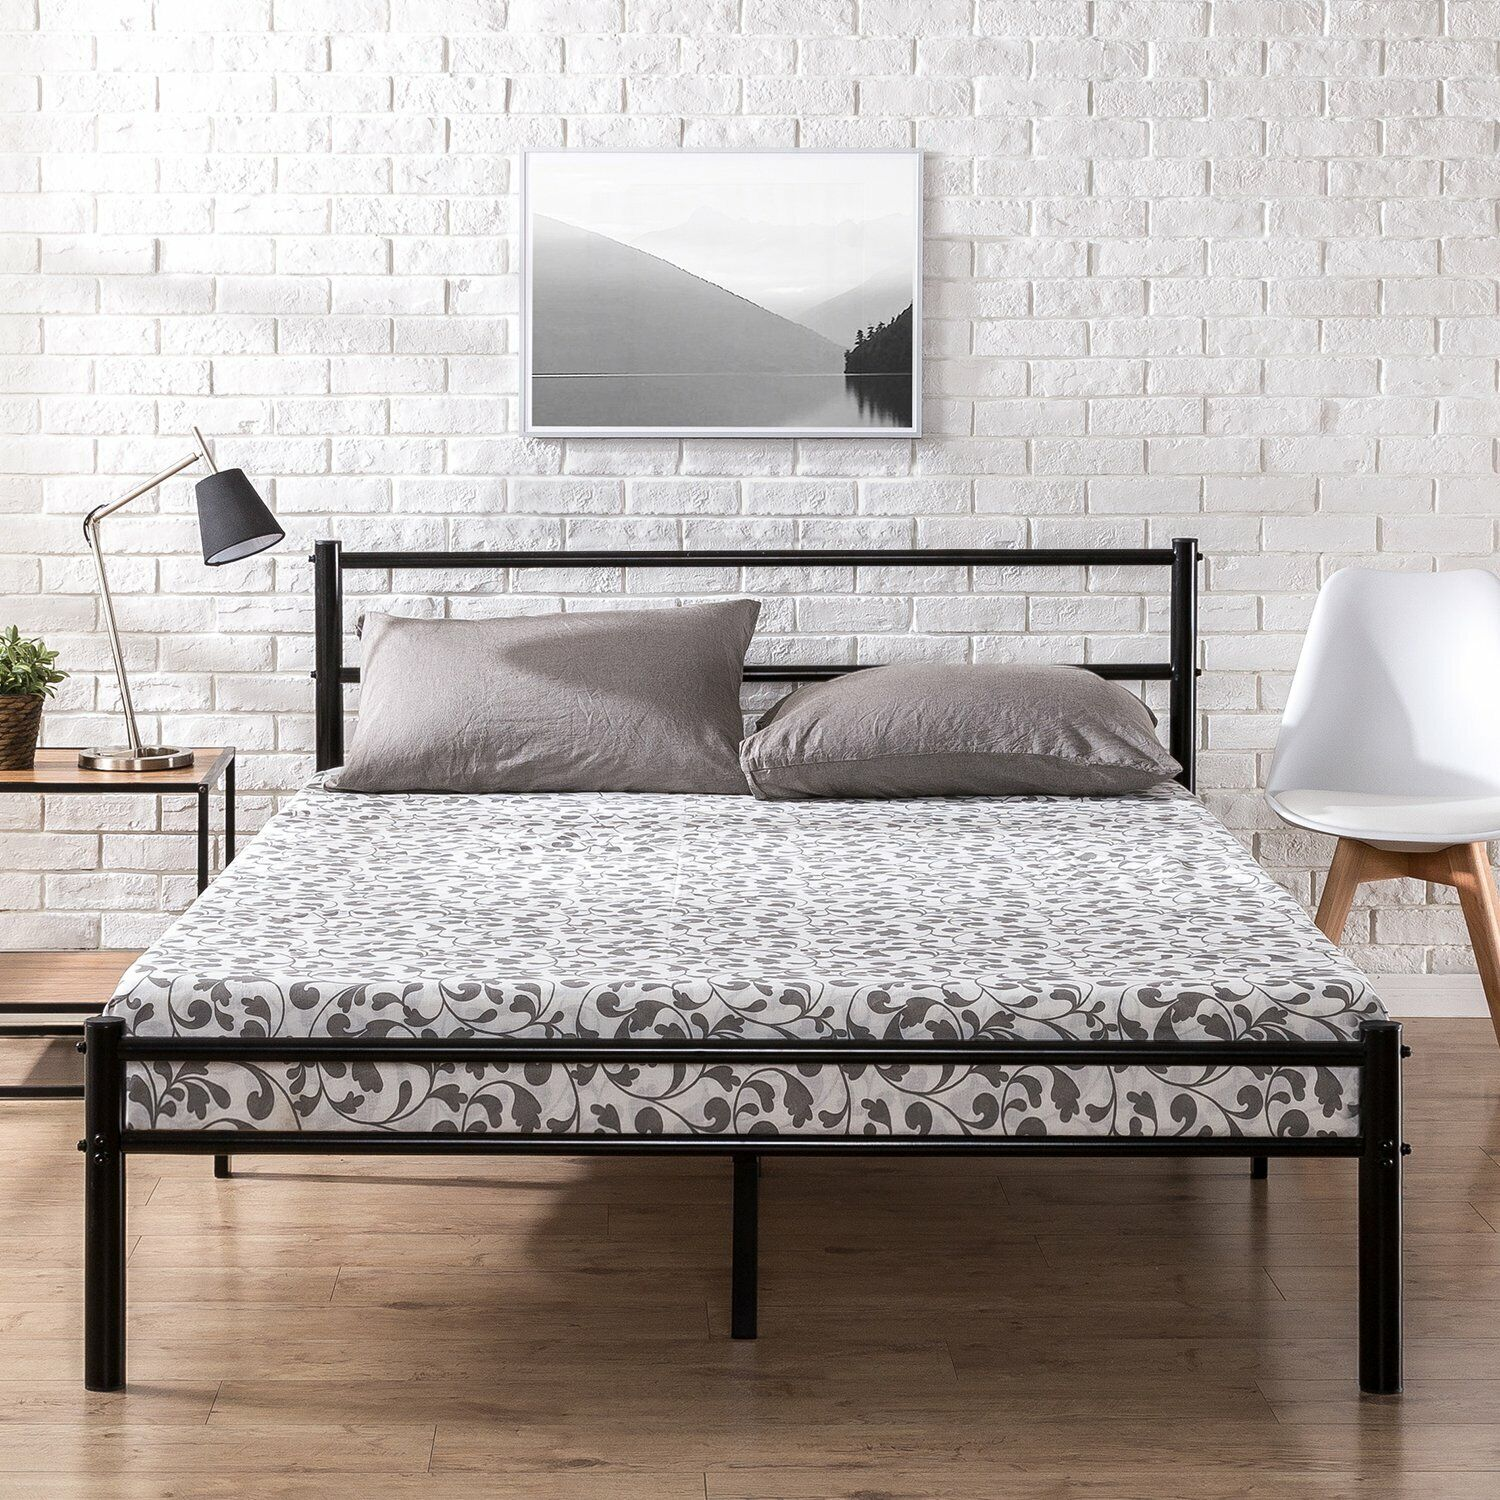 King Size 9 Leg Metal Bed Frame With Headboard Footboard Brackets